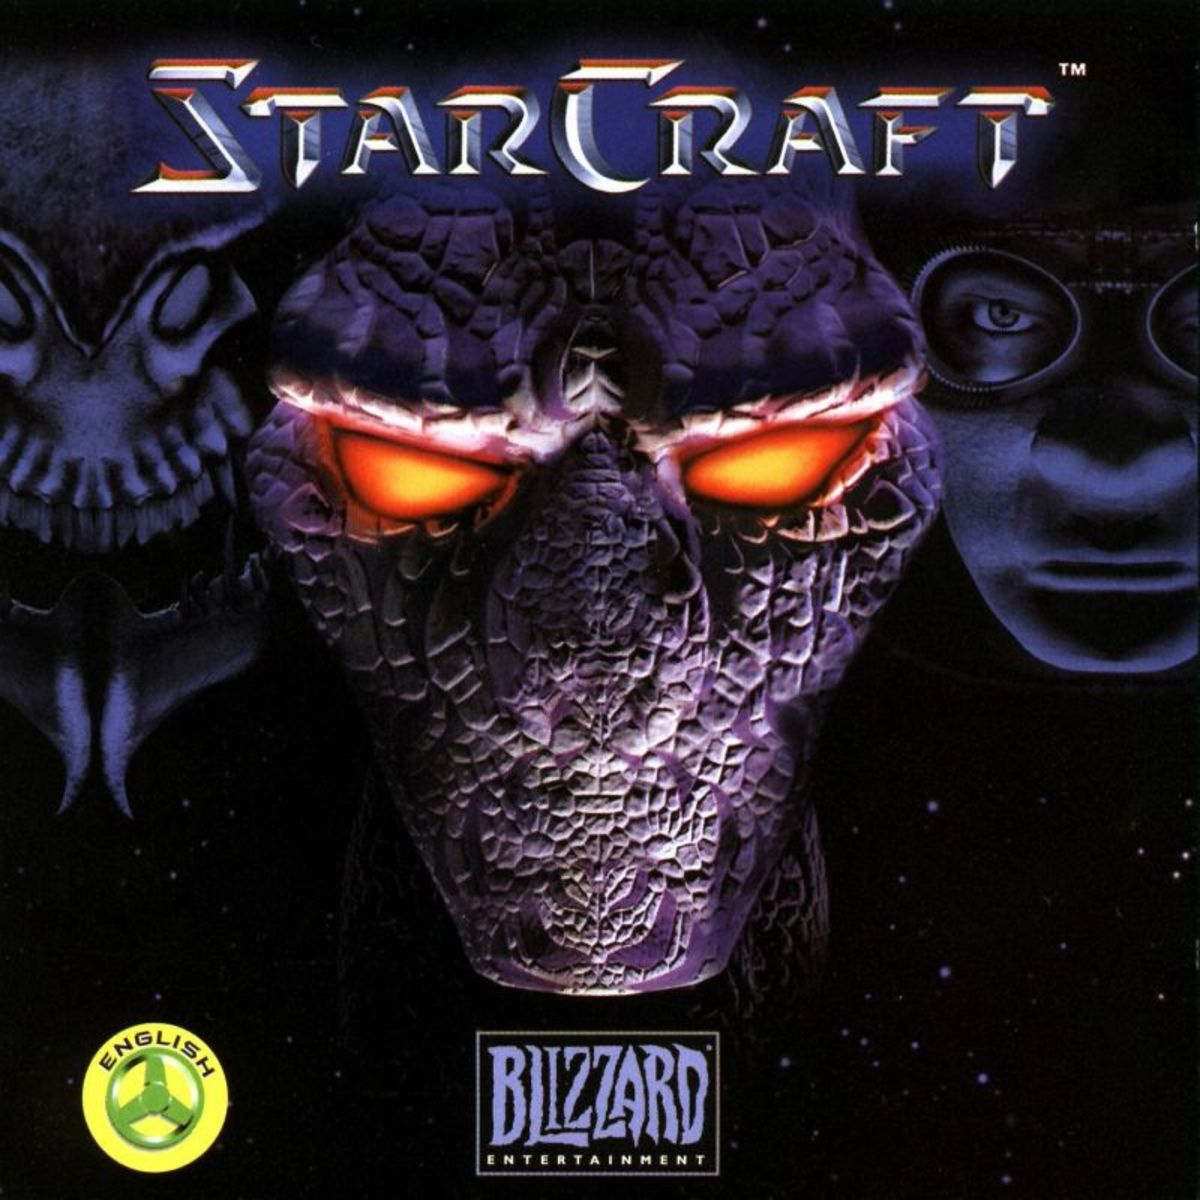 The cover of Starcraft 1